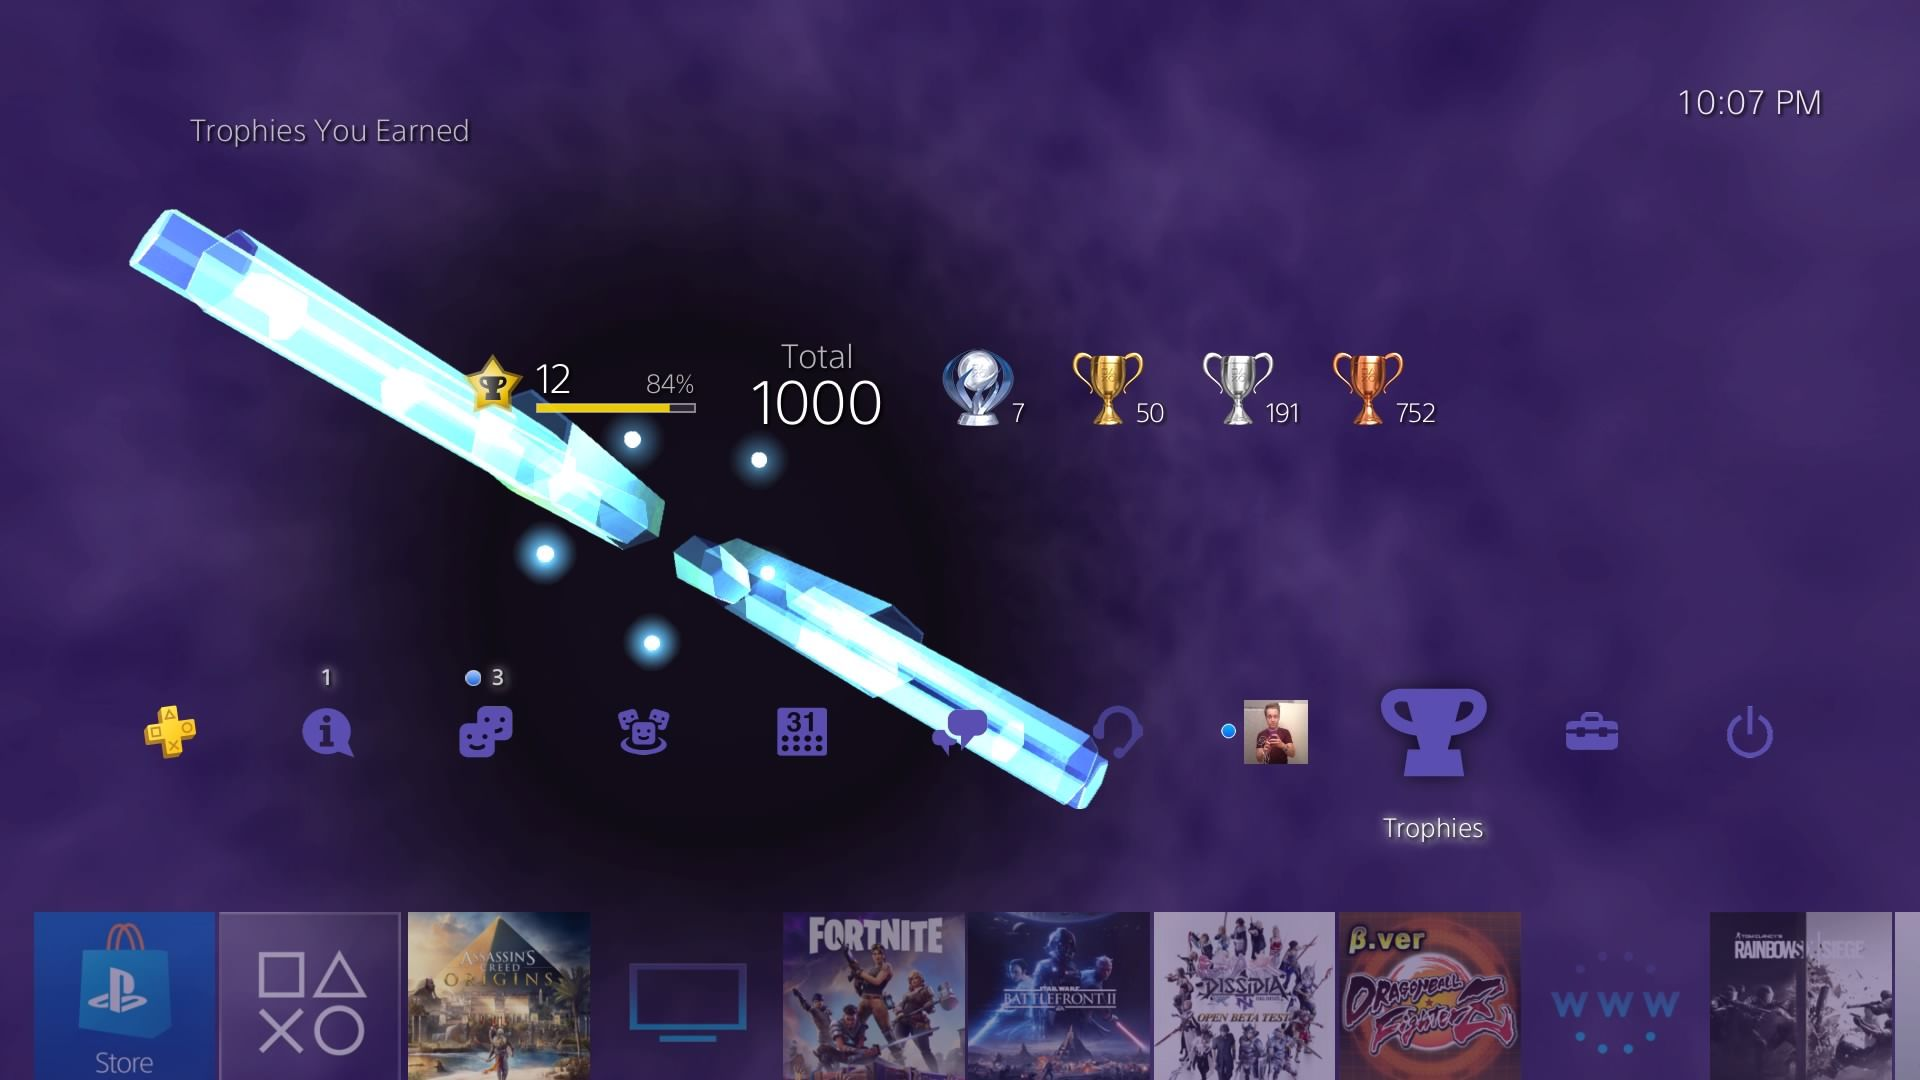 Screenshot] The Platinum Trophy for Assassins Creed: Origins is also